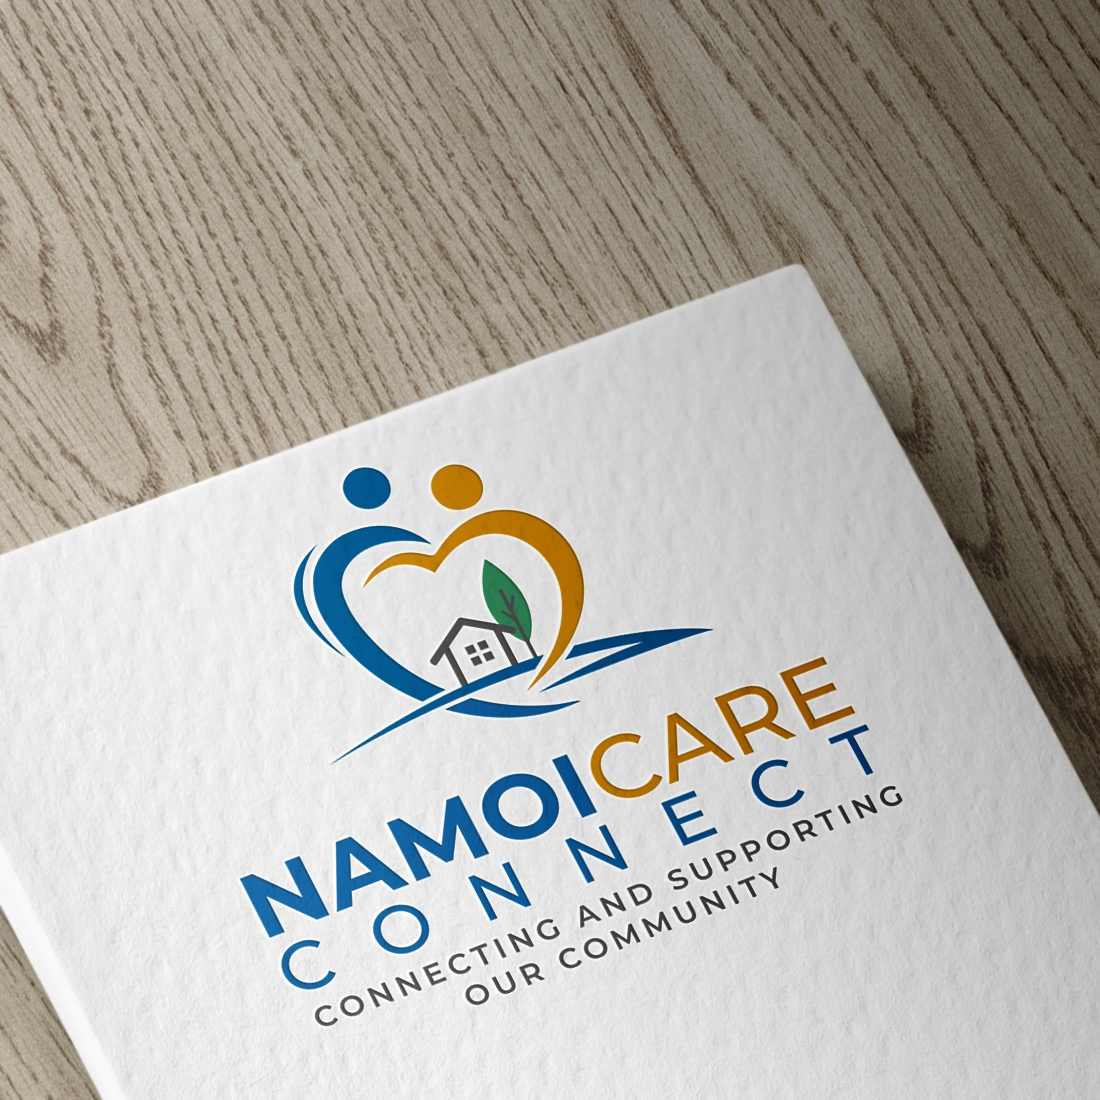 Logo design done for a community support center